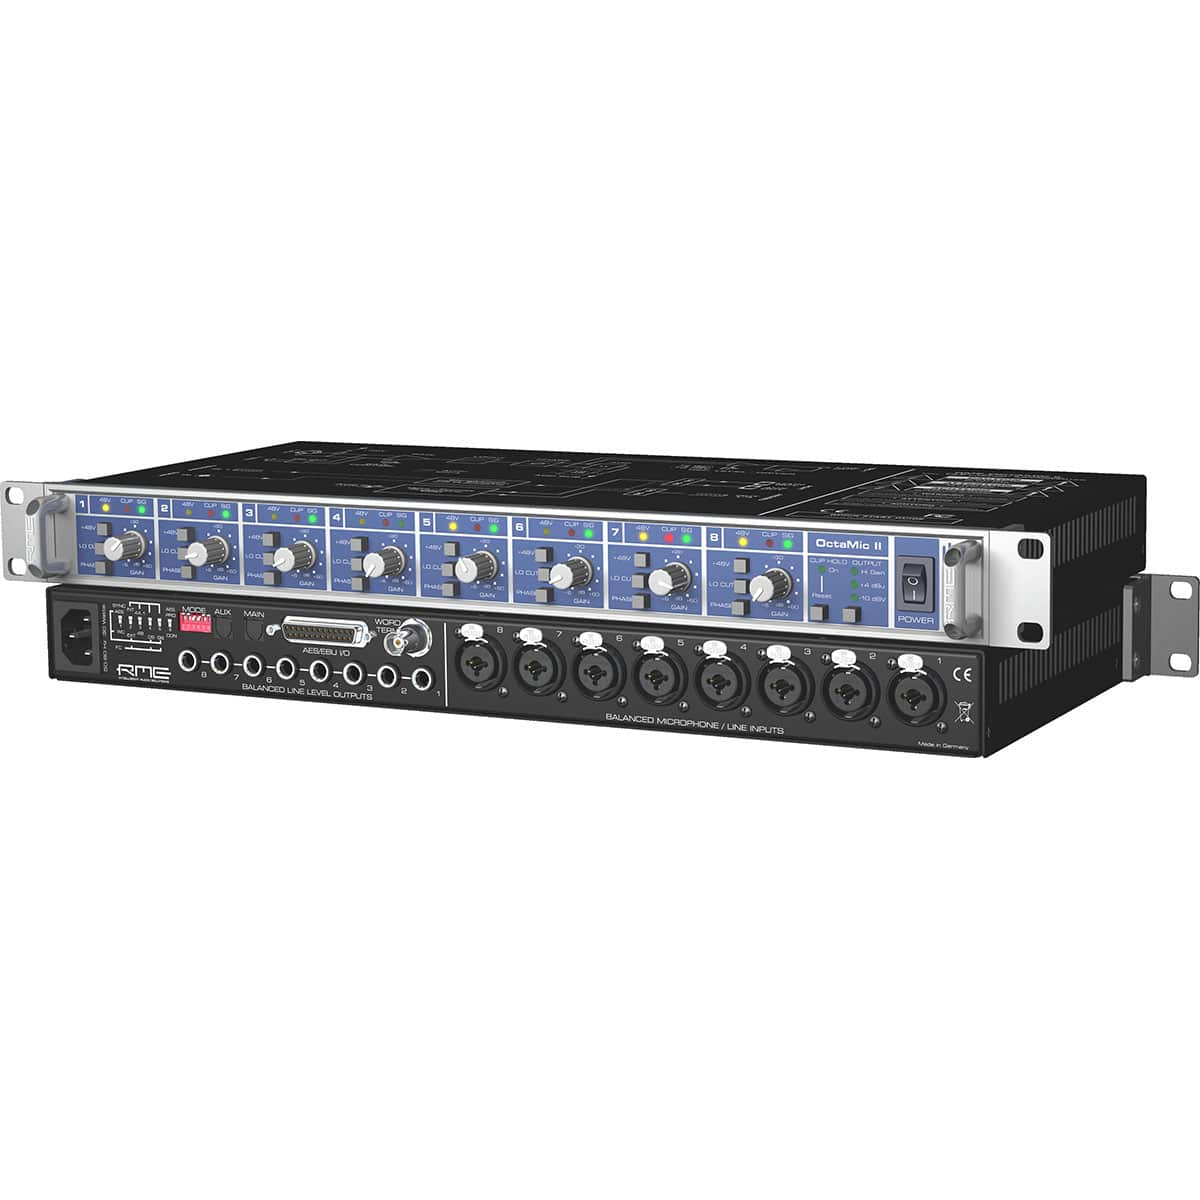 RME Octamic 2 03 Convertitori Audio, Recording, Outboard, Preamplificatori Microfonici, Audio Digitale Convertitori e Schede Audio